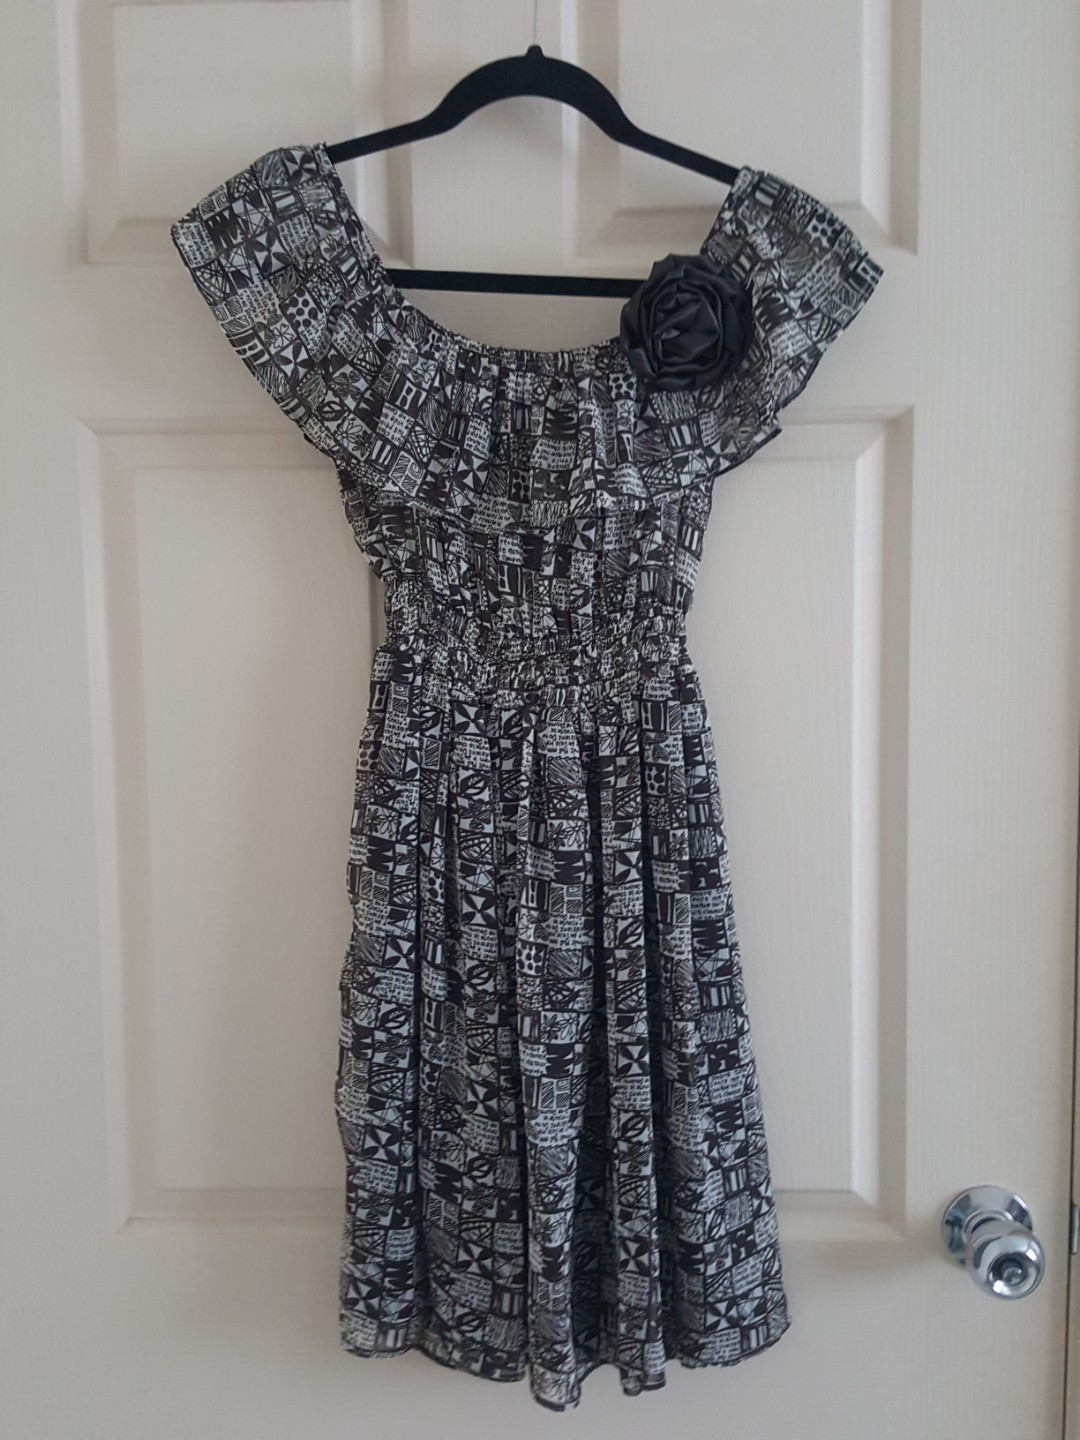 Brown patterned dress with flower brooch